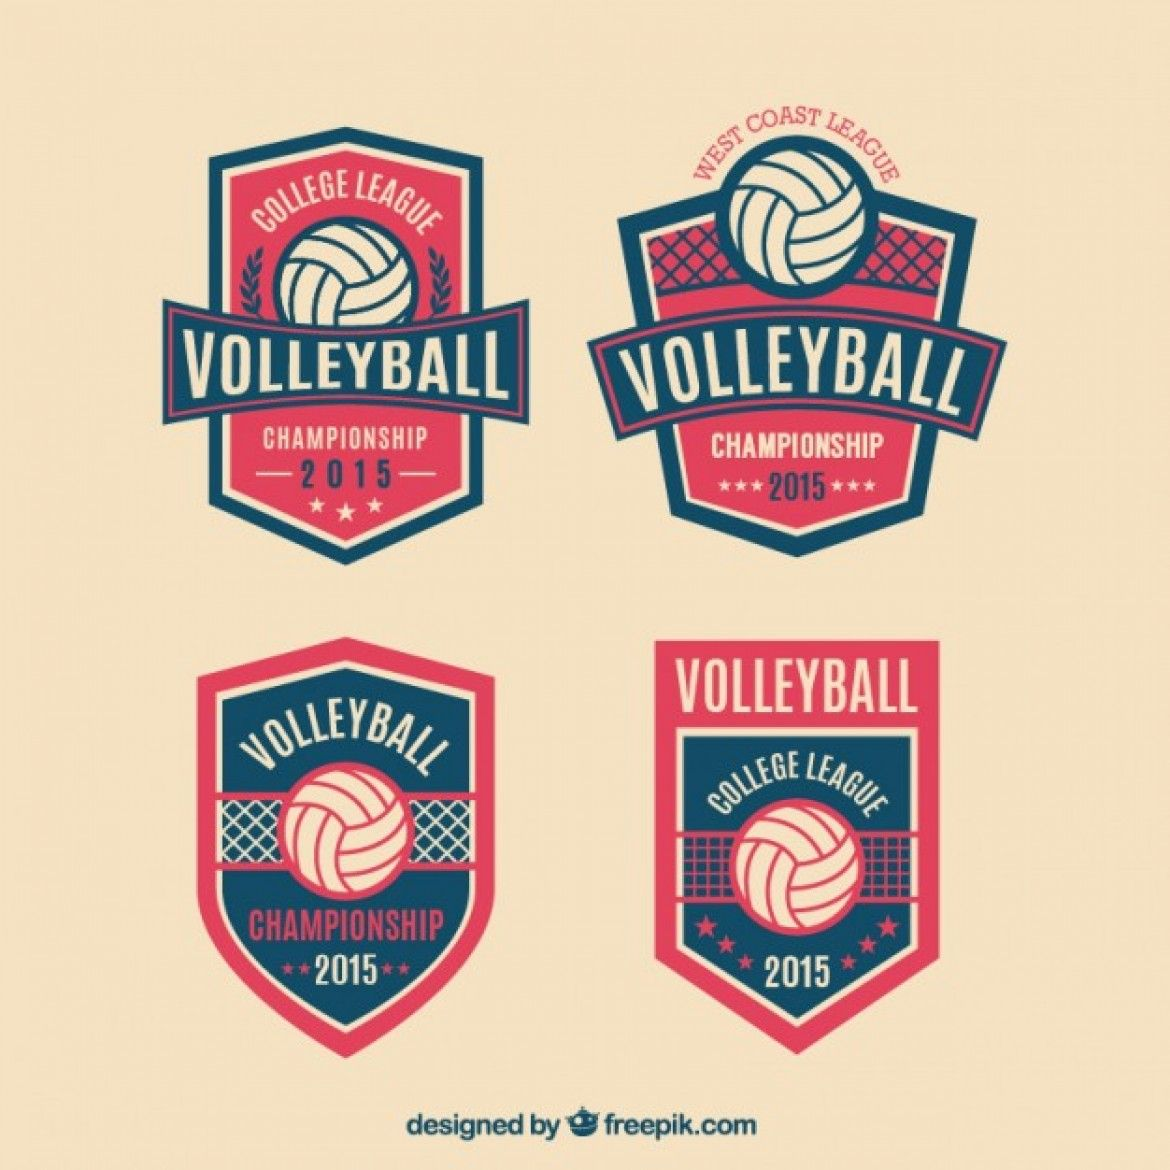 Free Vector Volleyball Badges Pack 25593 Volleyball Designs Volleyball Volleyball Shirt Designs